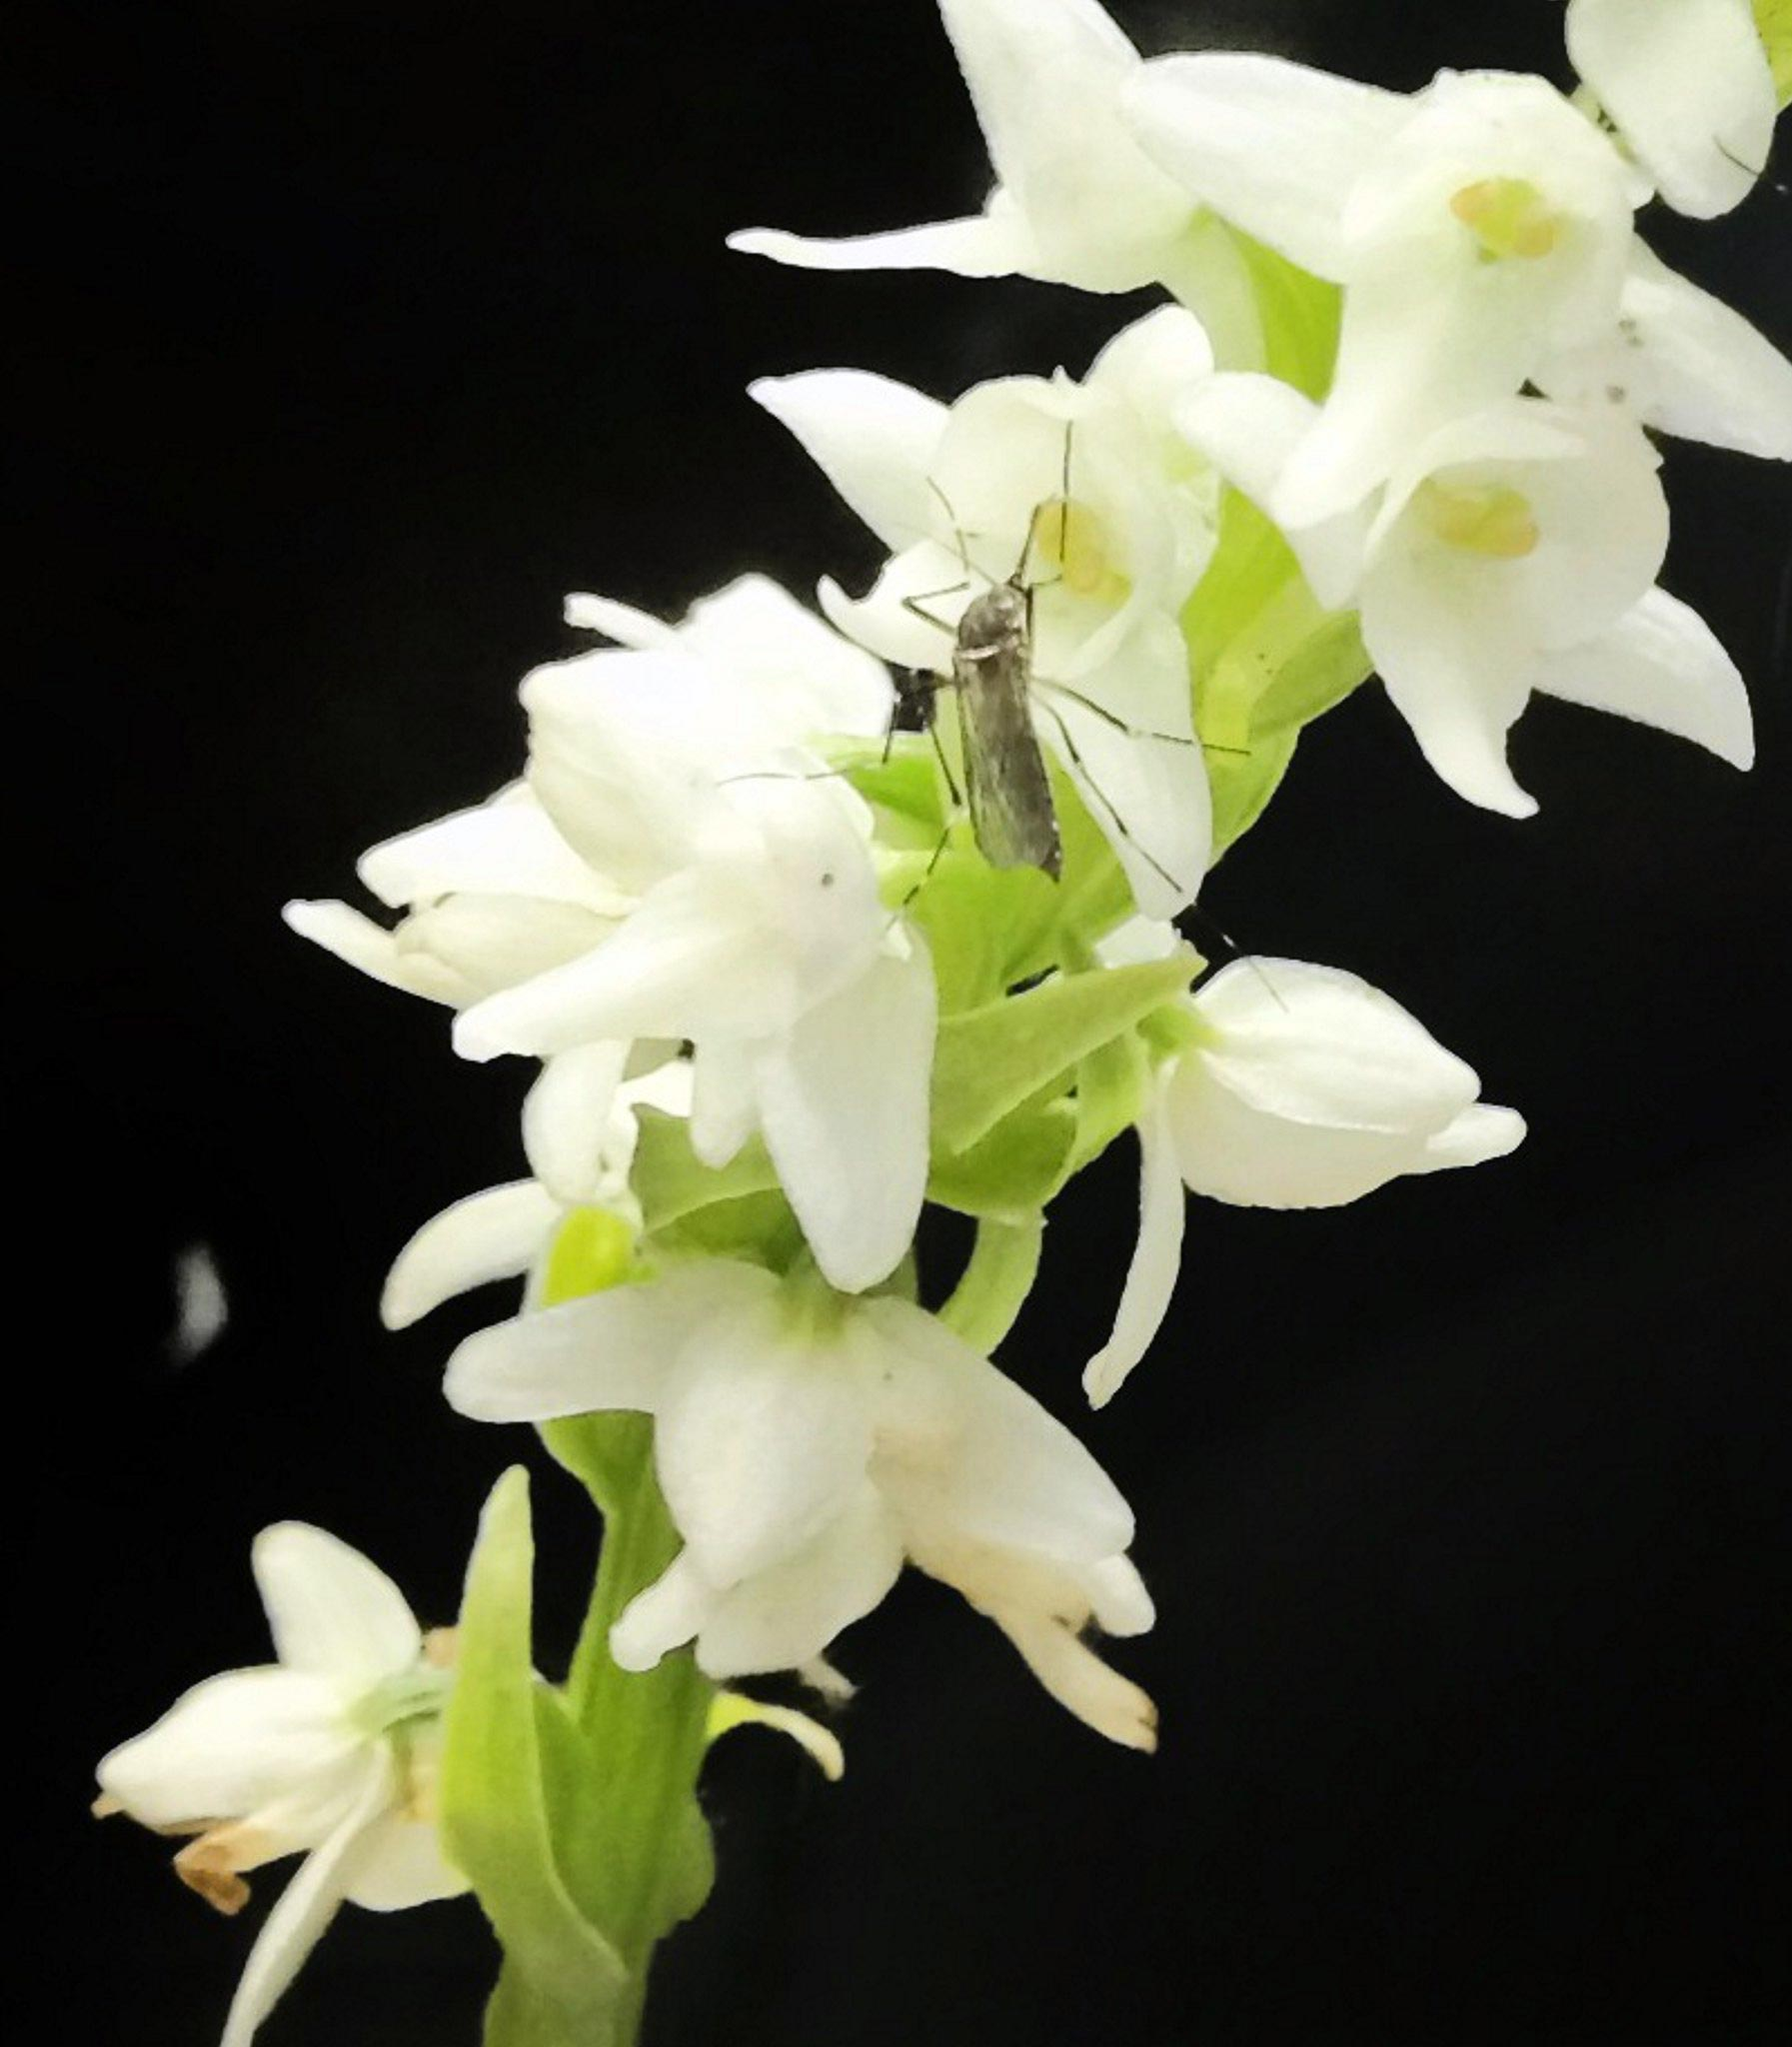 Mosquitoes Are Drawn to Flowers As Much as People — Now Scientists Finally Know Why - SciTechDaily